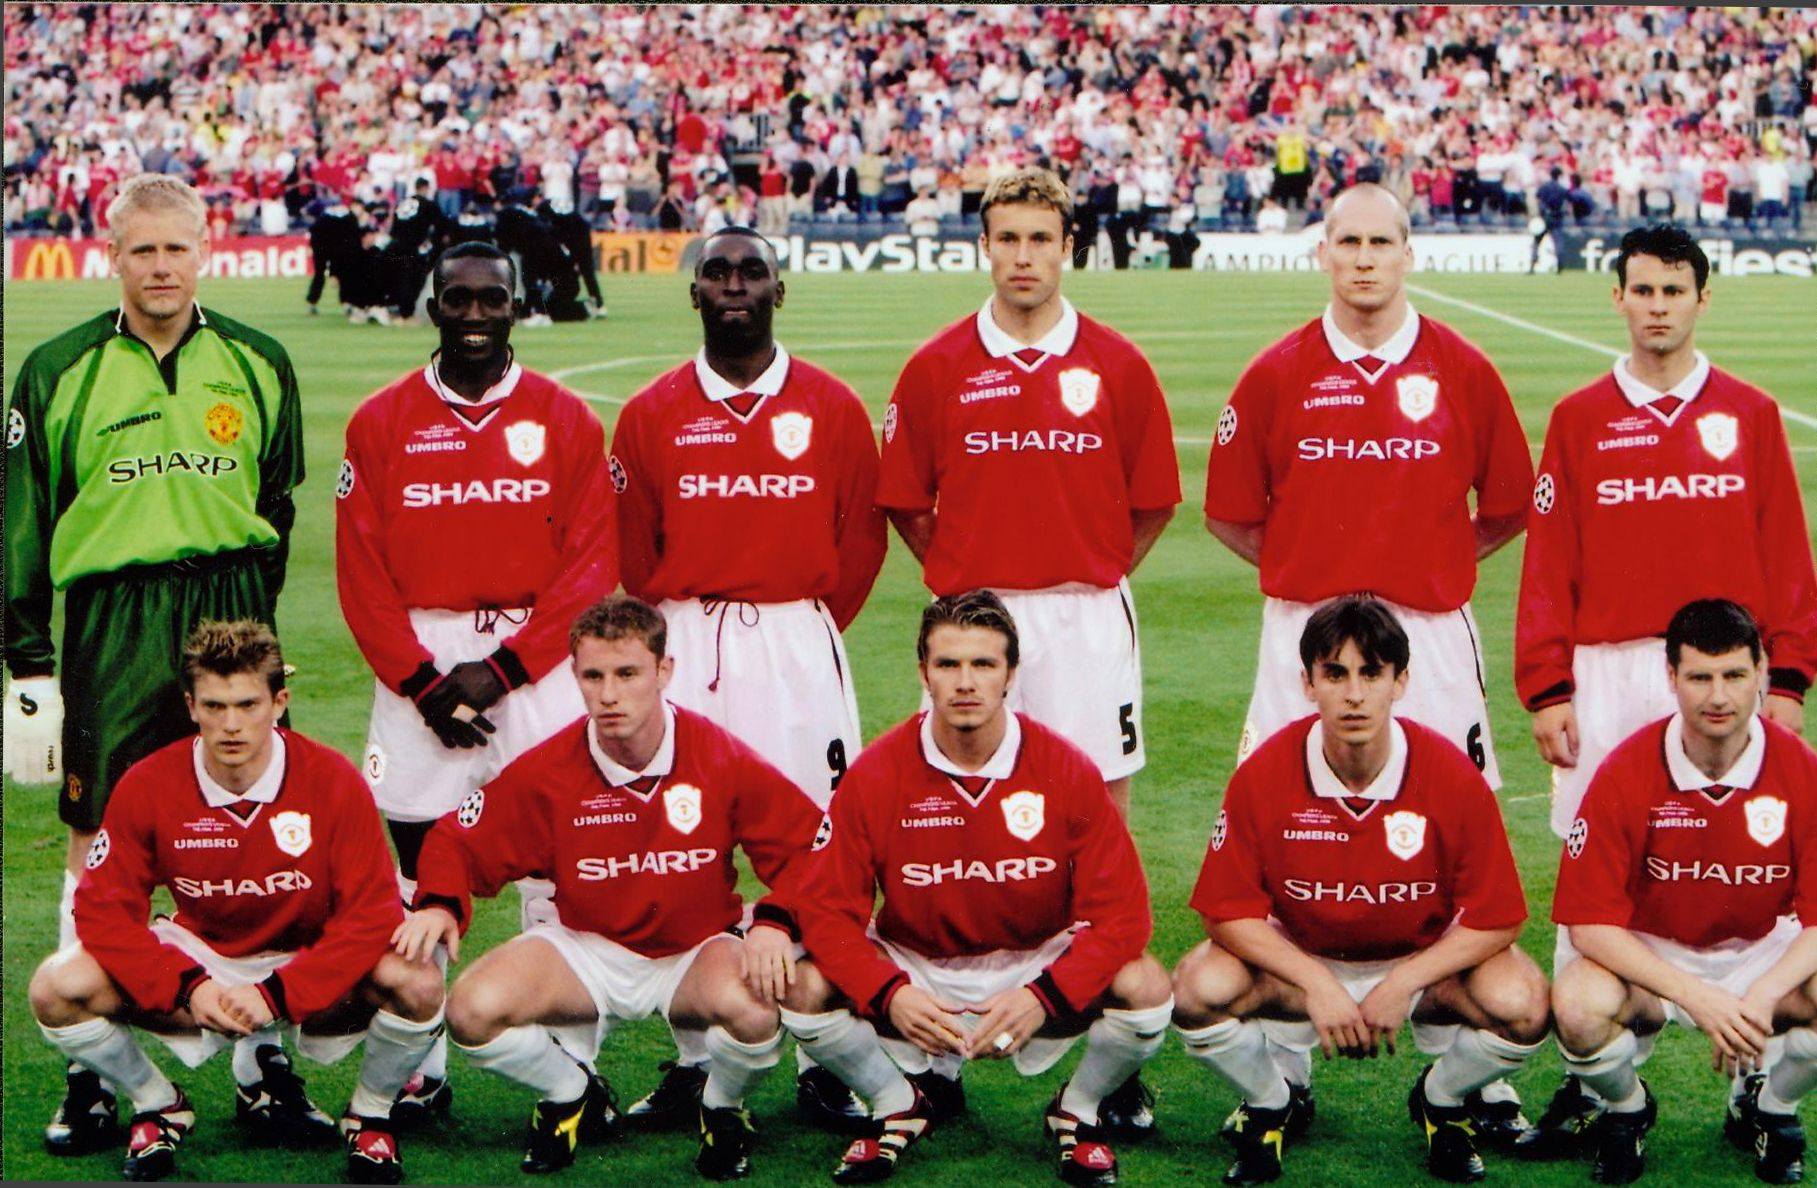 Manchester United Vs Bayern Munich 1999 Ecl Final Check Out The Man Utd Treble Win Manchester United Legends Manchester United Team Manchester United Players